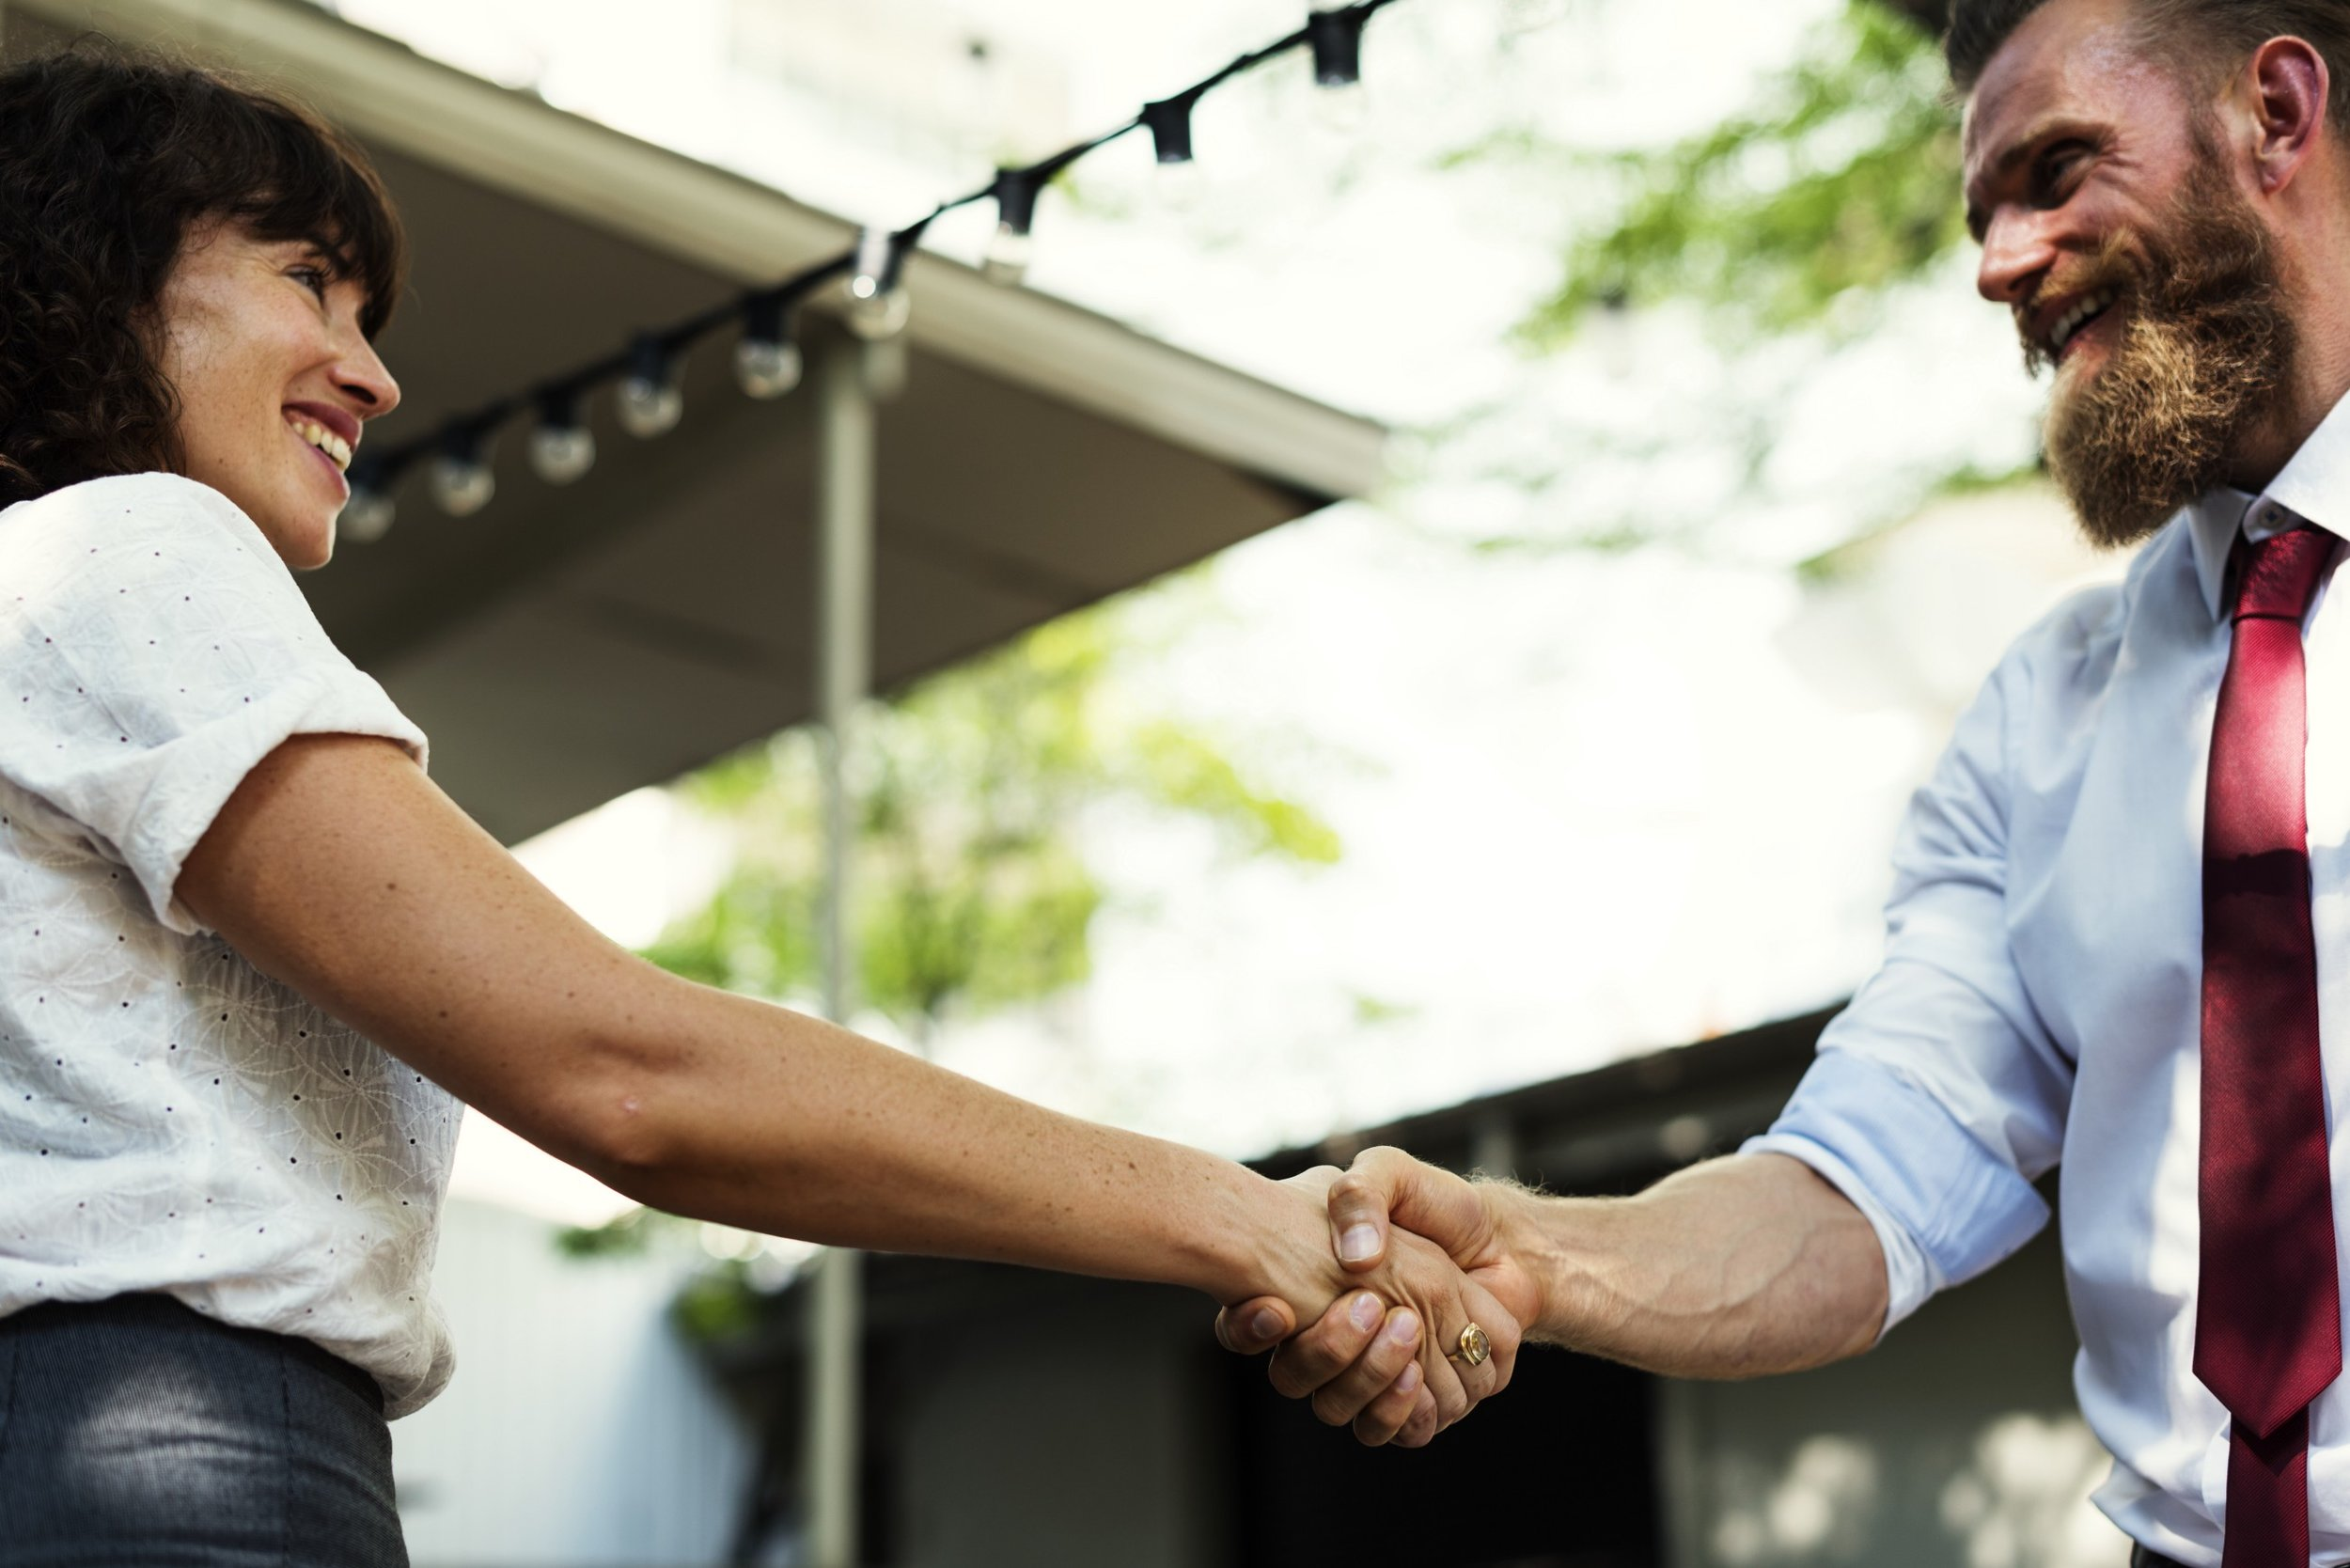 Man and woman shaking hands. Photo by  rawpixel  on  Unsplash